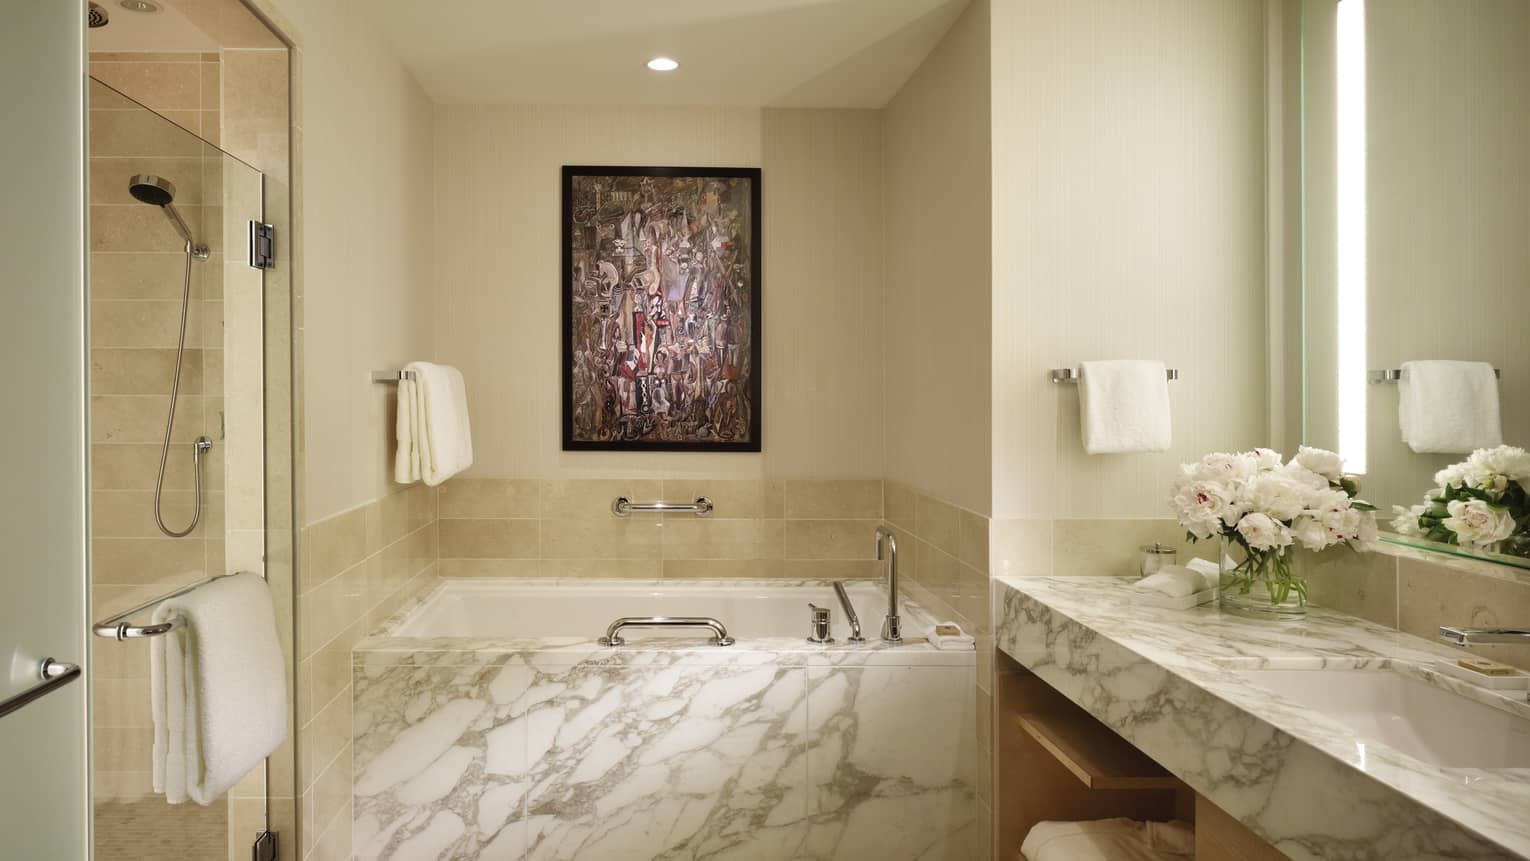 Large white marble bathroom with deep tub in between glass shower, sink and vanity